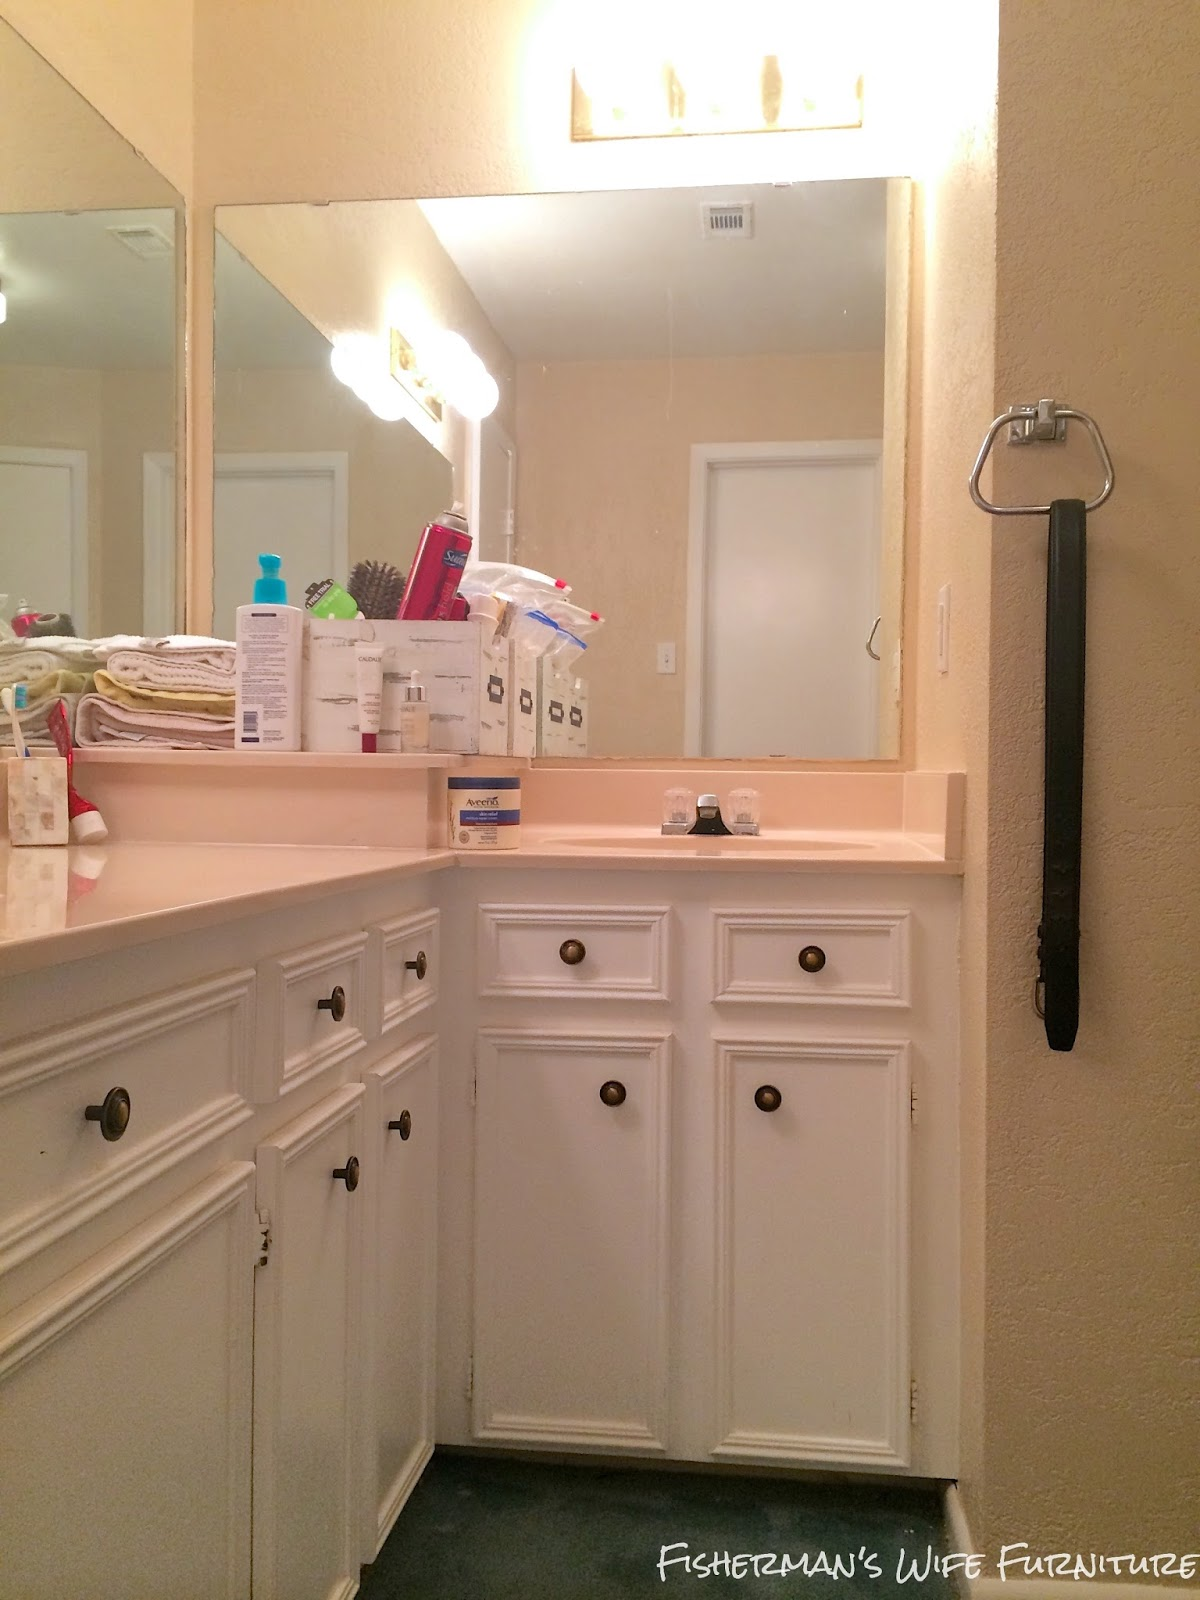 I Hate The Awkward Lshaped Vanity We Don't Even Use The Sink Shoved In  The Corner The Blow Dryer Usually Lives In That Sink